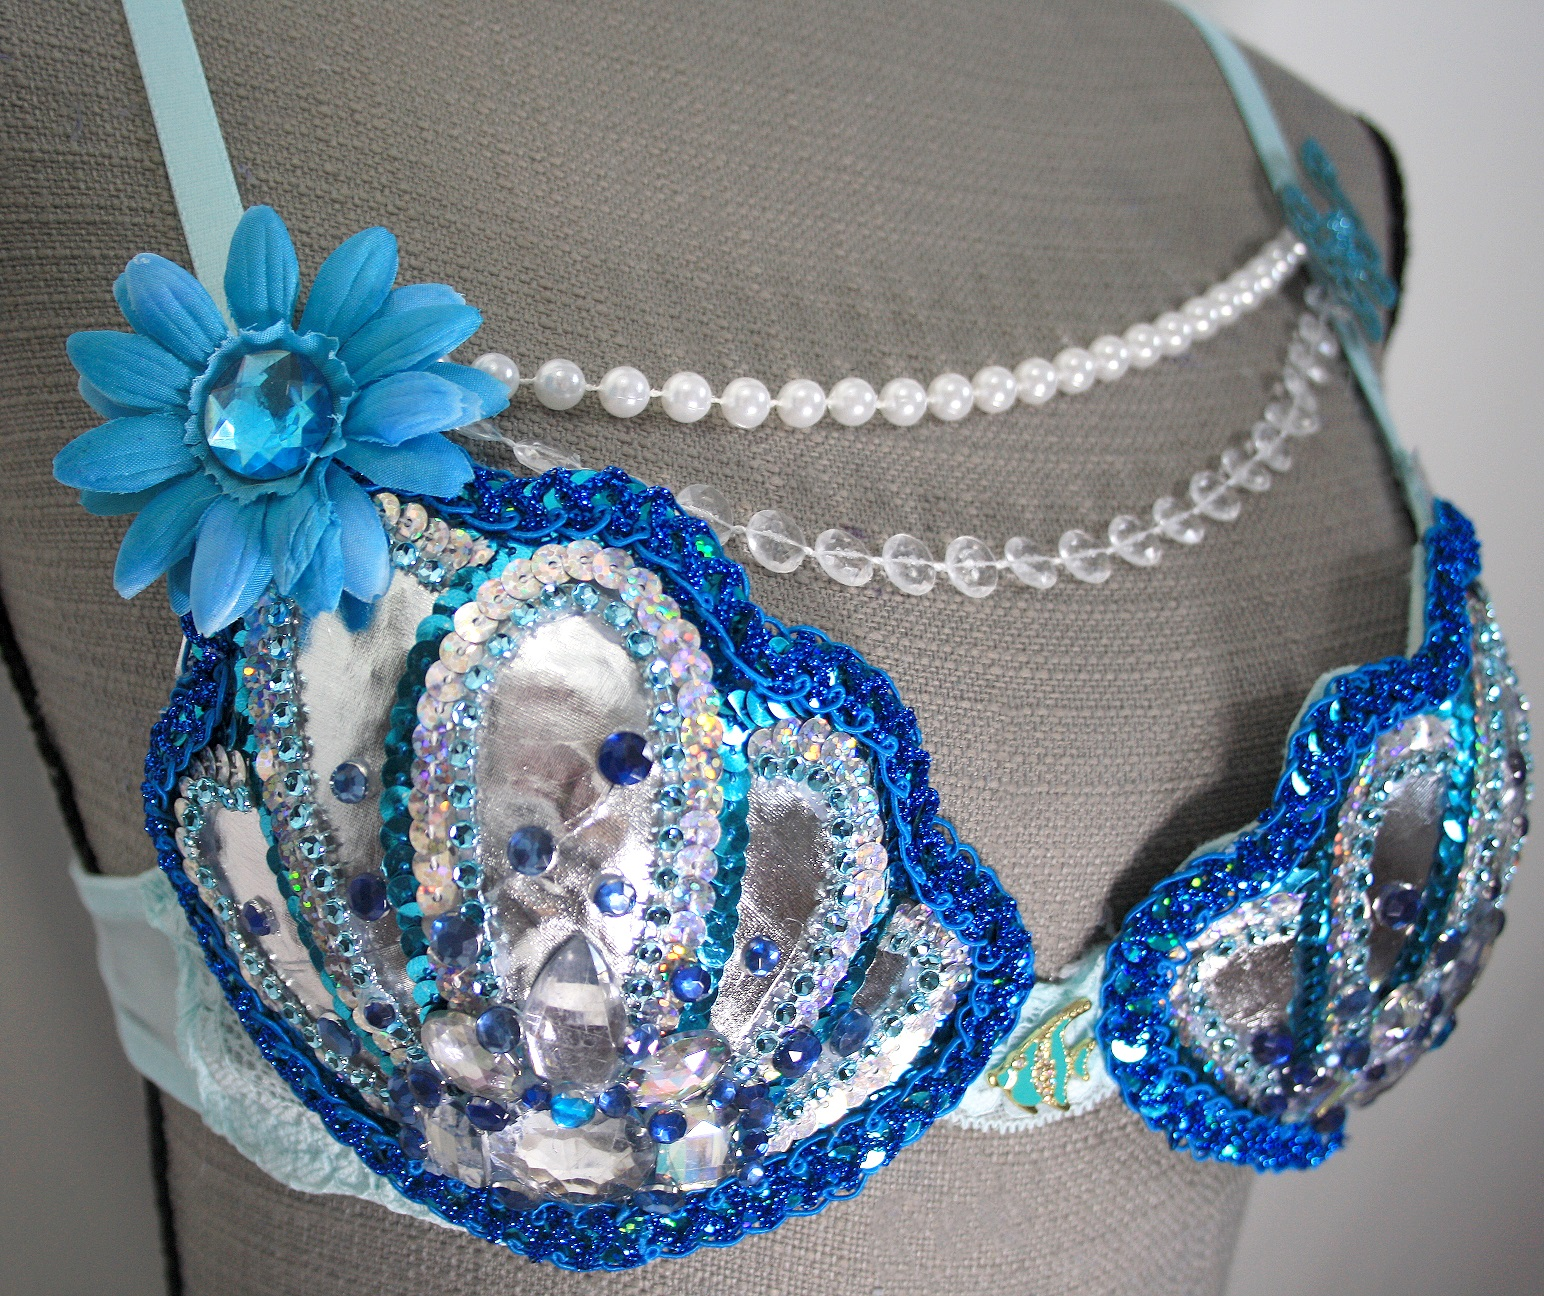 9d5cb3c7c0 32A Tiffany Mermaid Rave Bra · RaveLux · Online Store Powered by ...